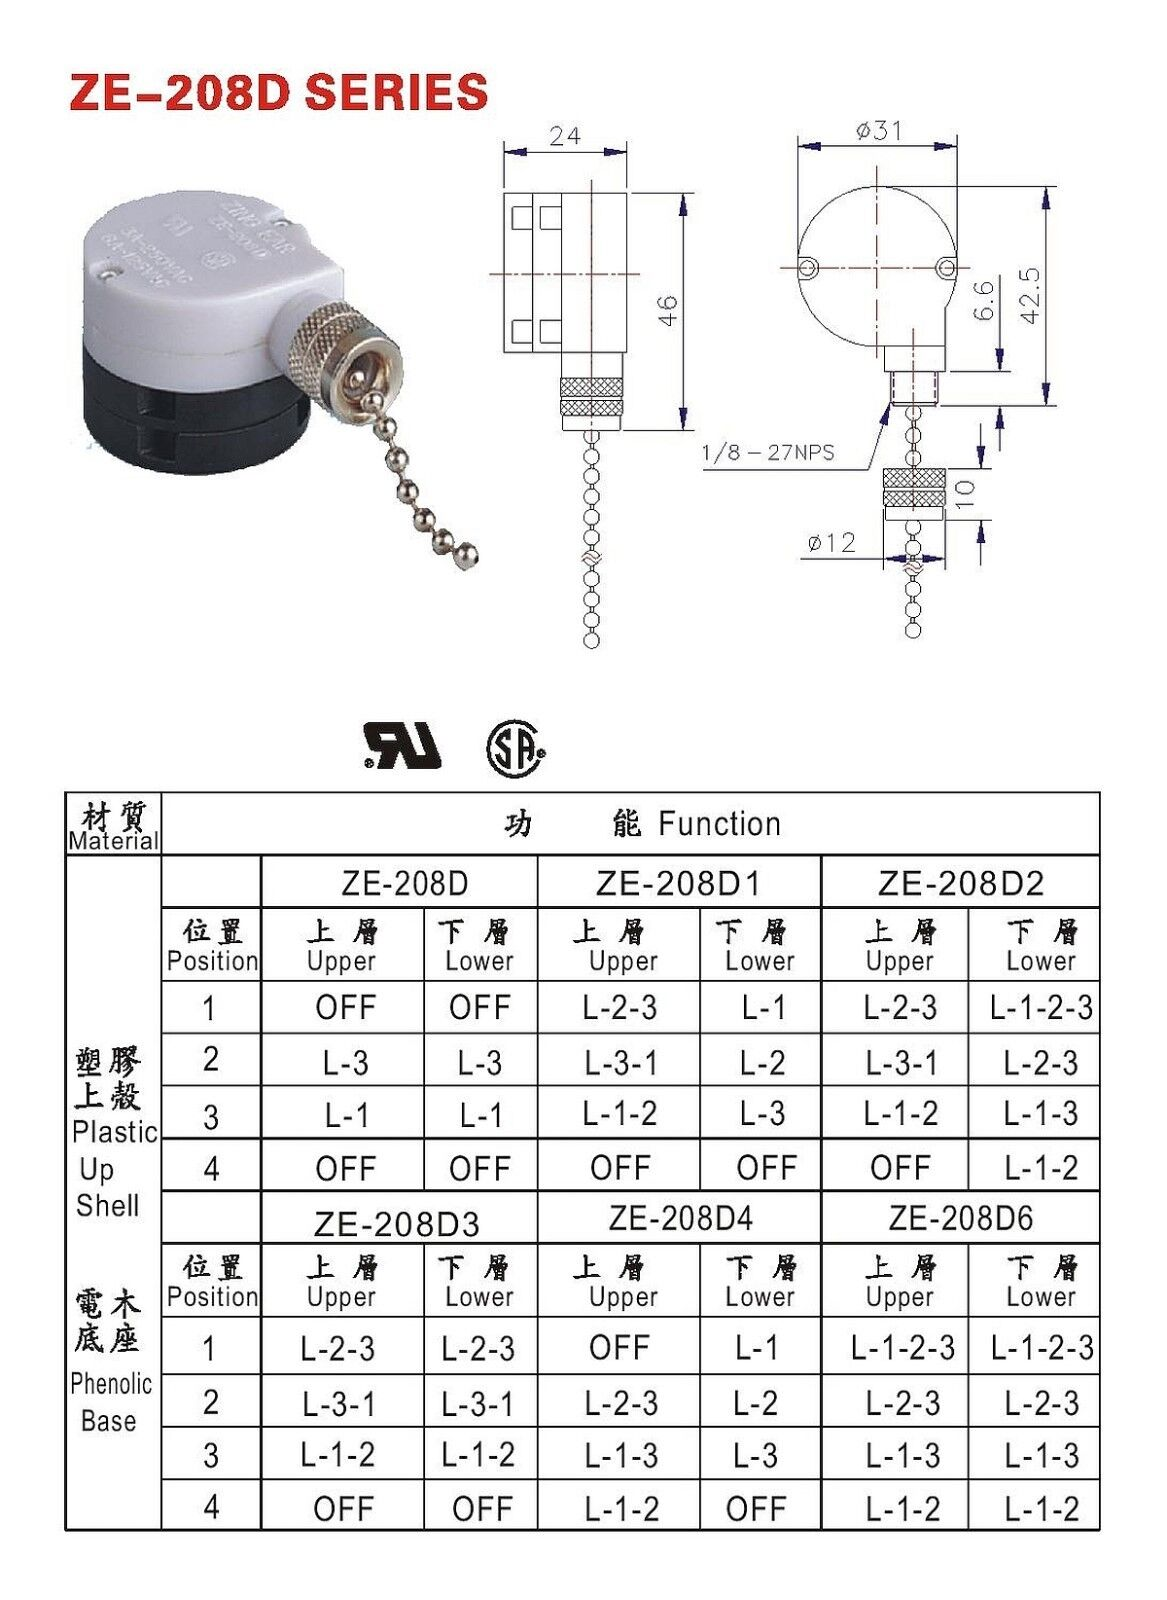 Zing Ear Ze-208S Wiring Diagram from i.ebayimg.com